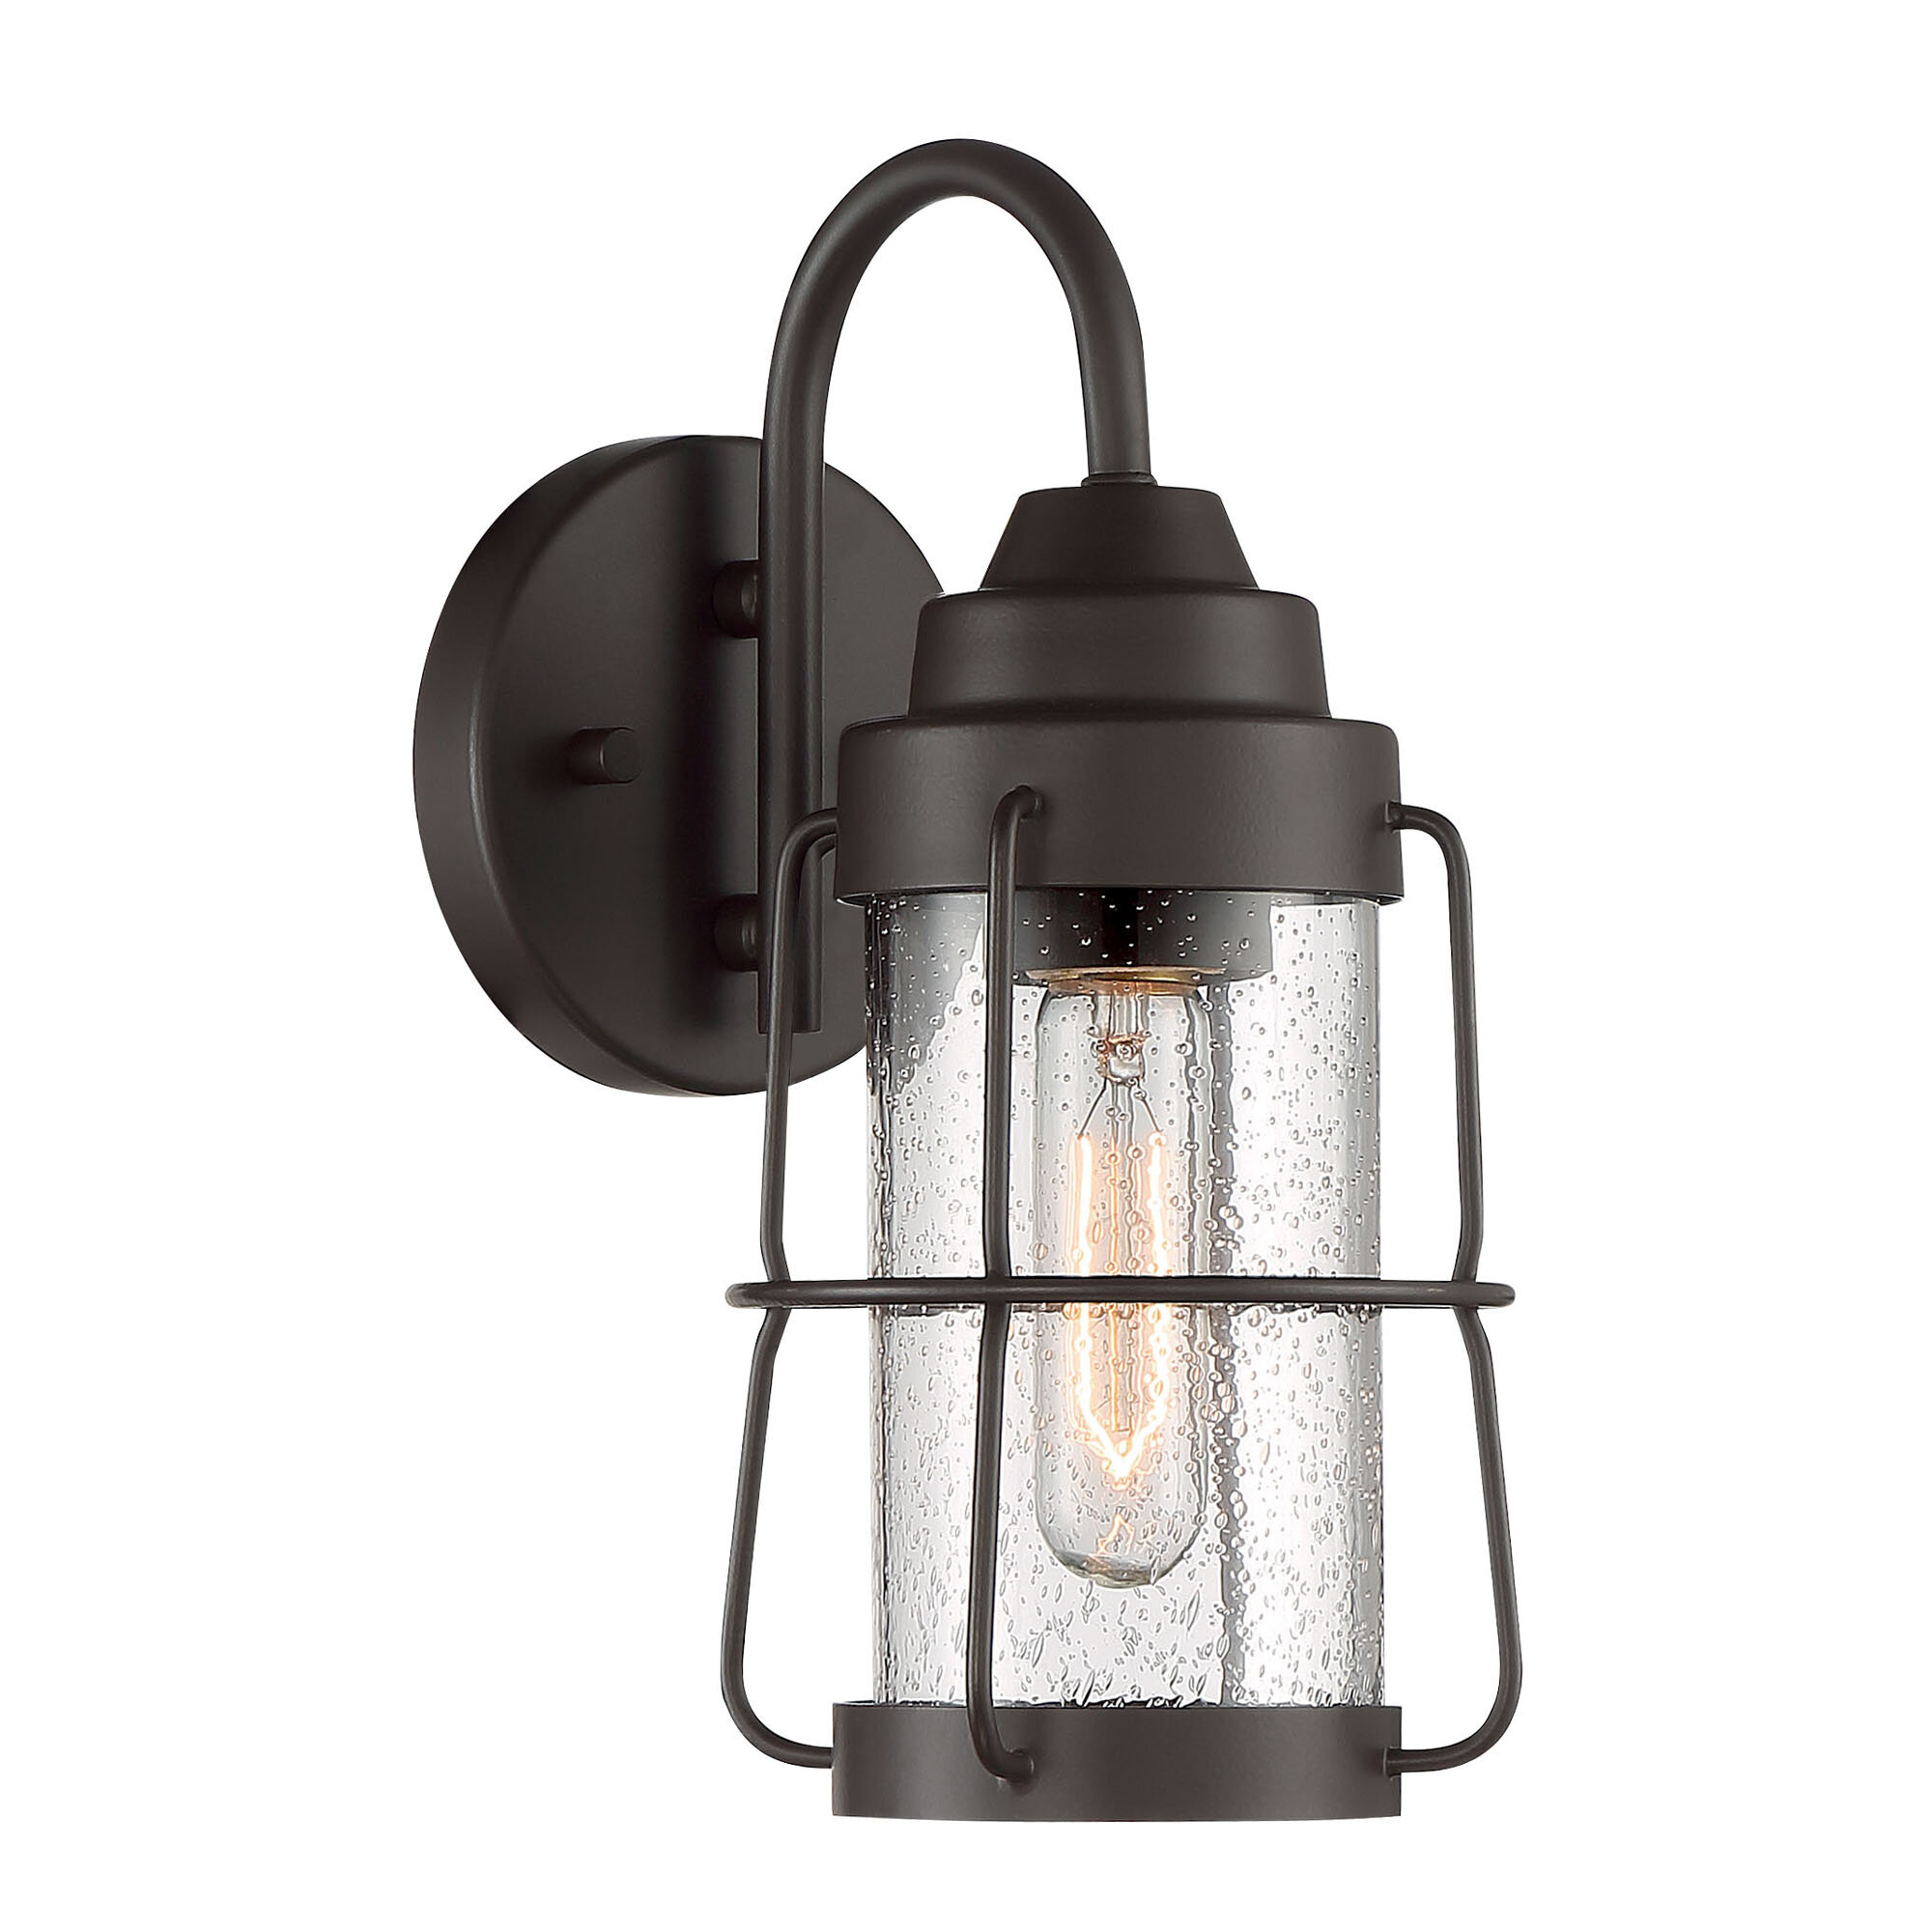 Breakwater Bay Adora Rustique 1 Bulb Plug In Outdoor Wall Lantern Wayfair